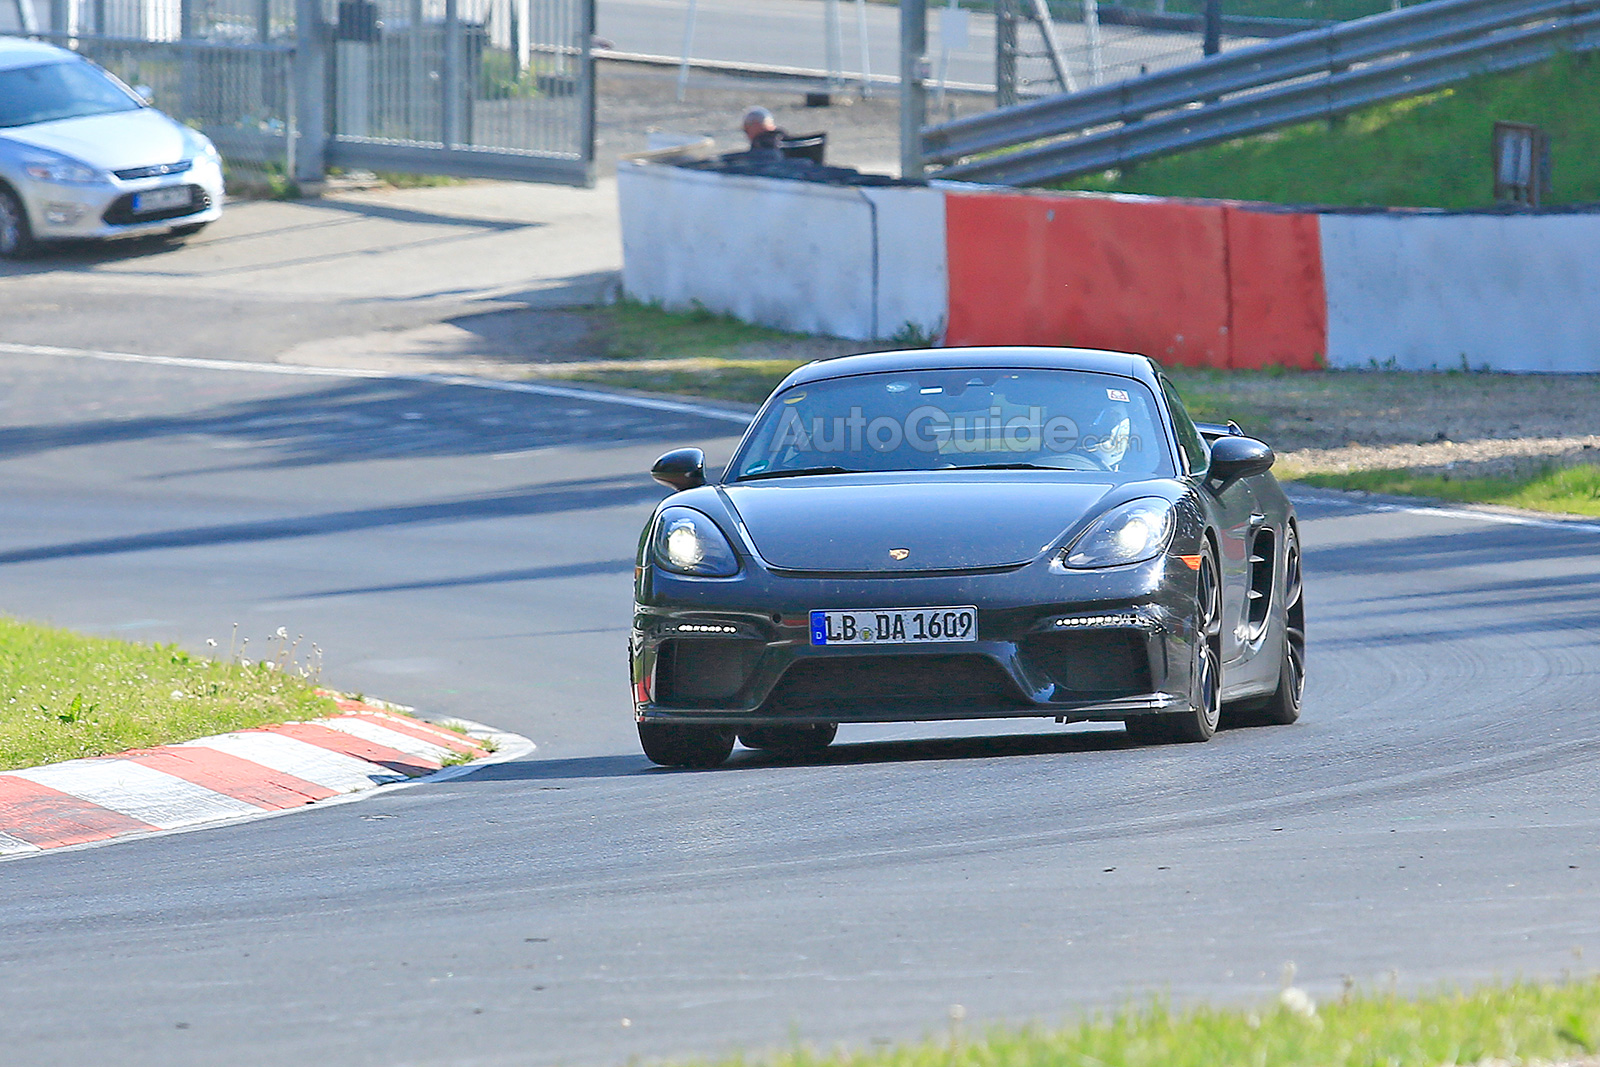 2019 Porsche 718 Cayman Gt4 Spied Testing On The Nurburgring Autoguide Com News